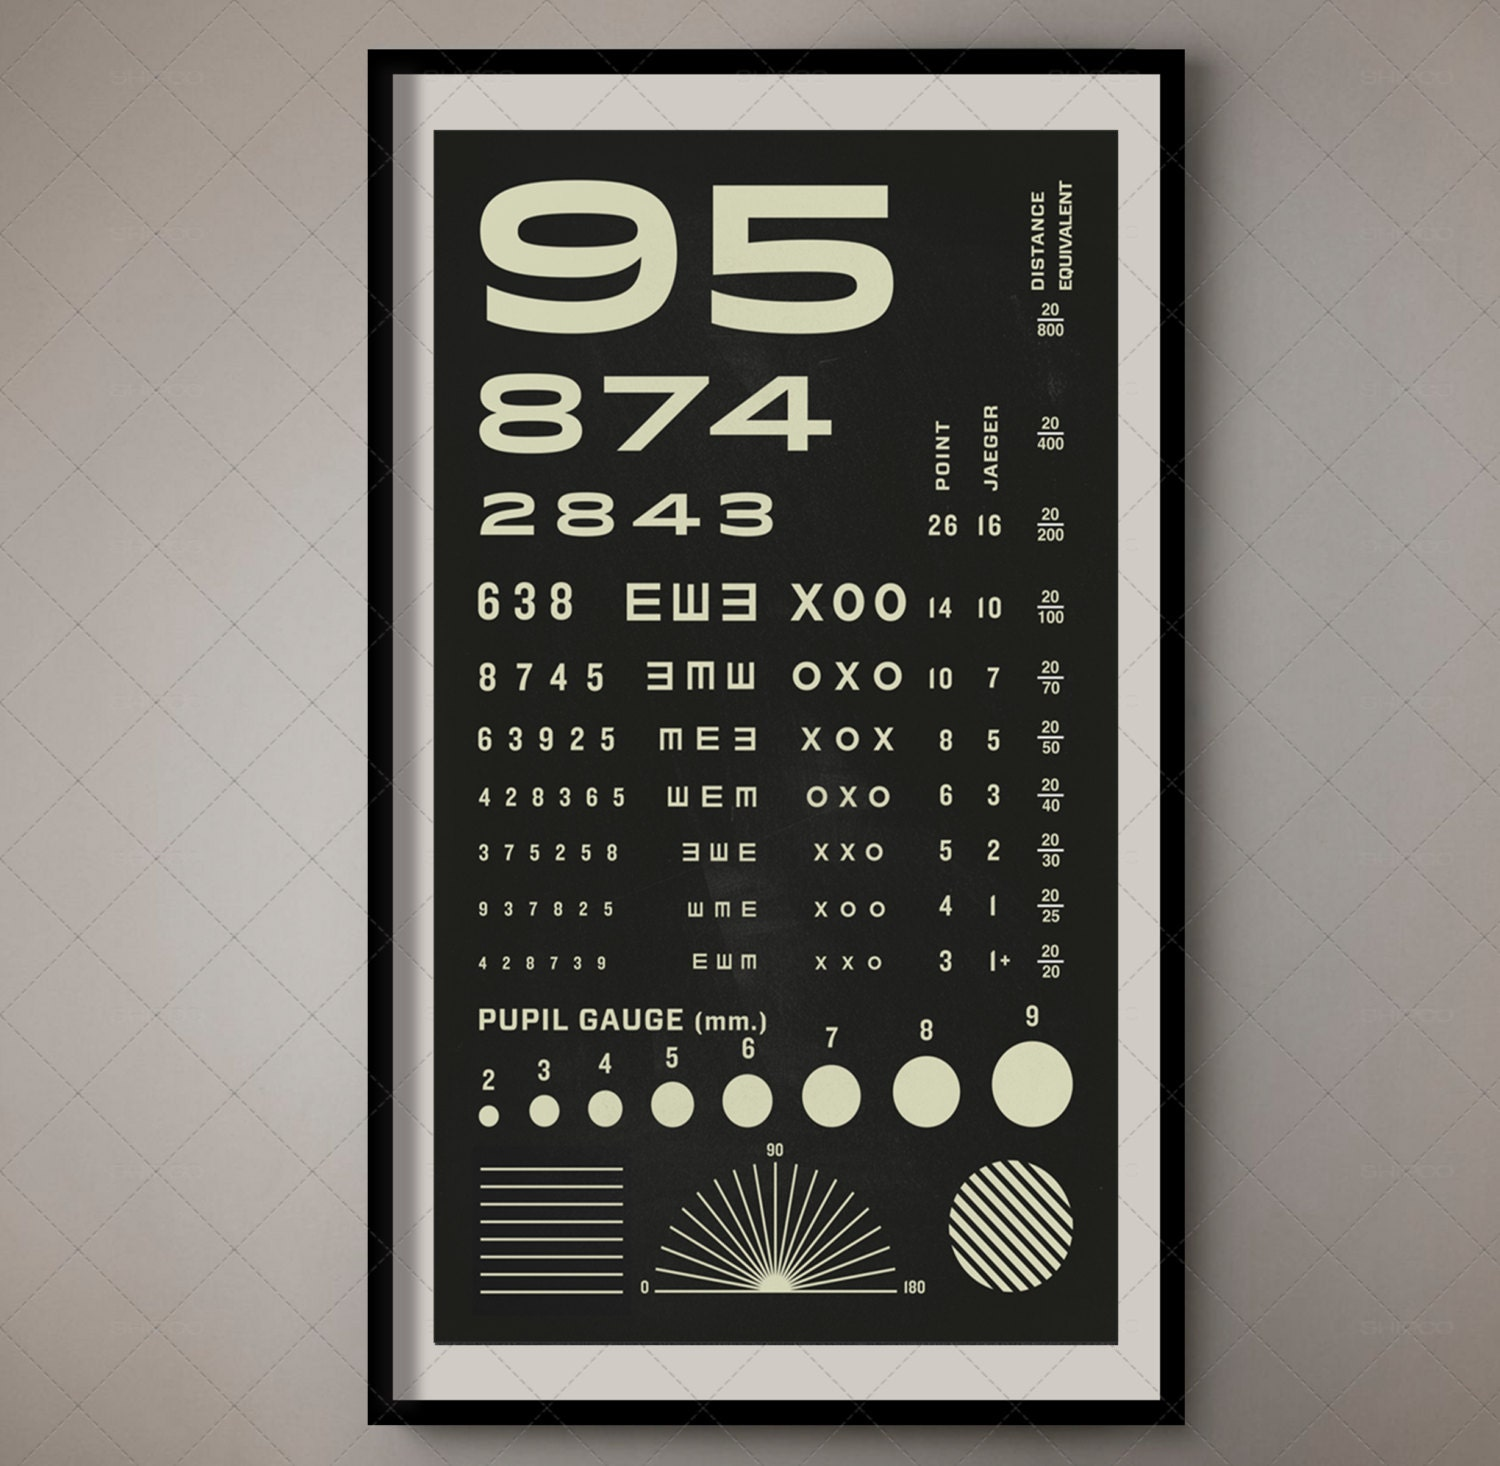 Rosenbaum eye chart pocket vision test for optometrists zoom nvjuhfo Image collections